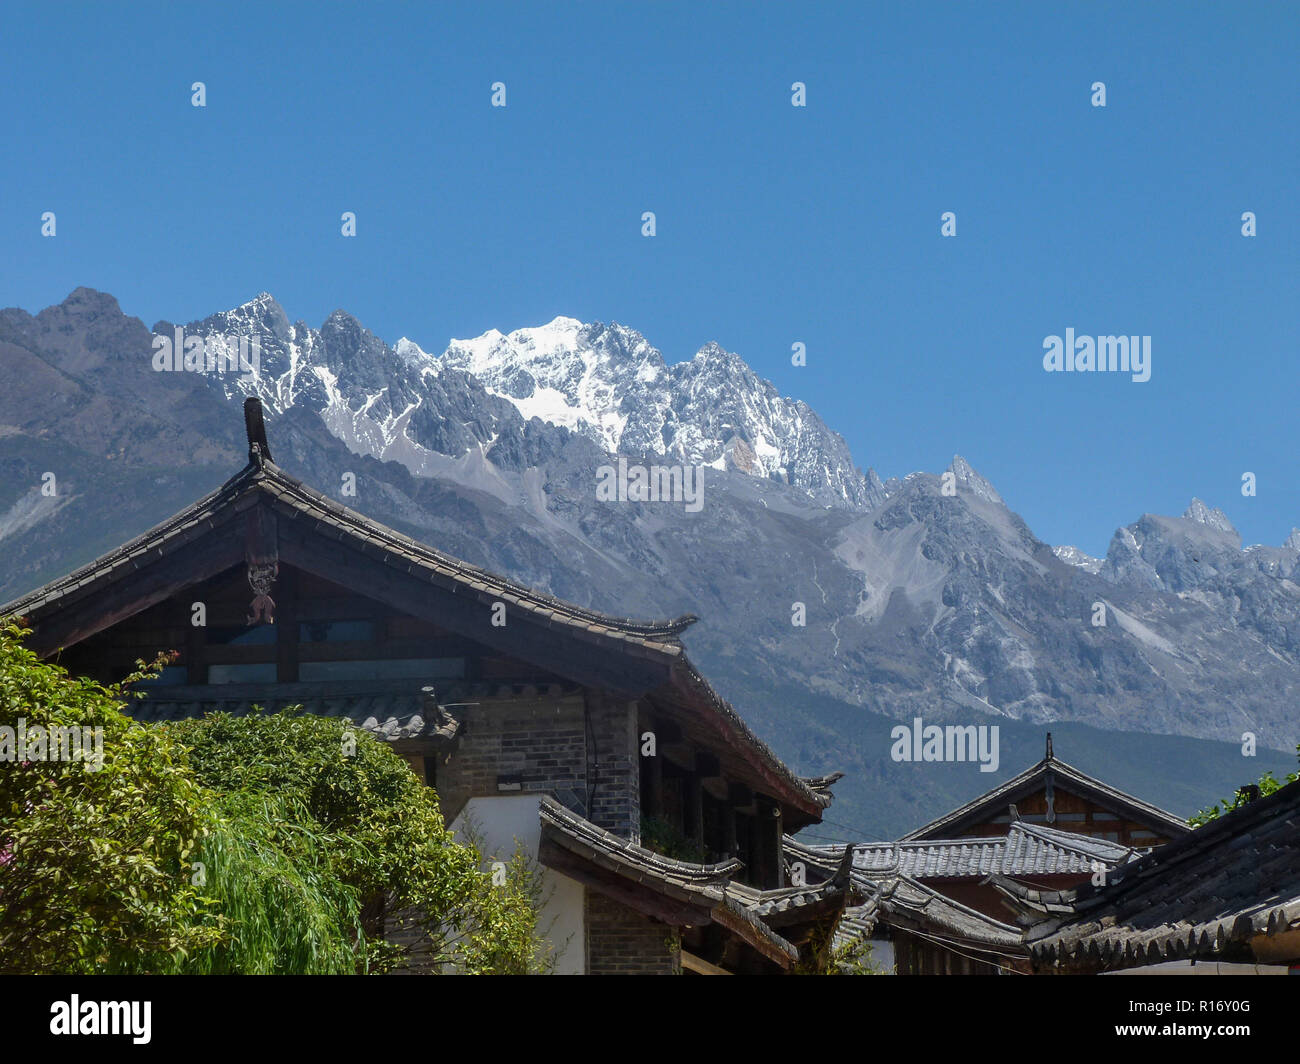 Snow covered Jade Dragon Mountains situated in the Yunnan Province of China. - Stock Image